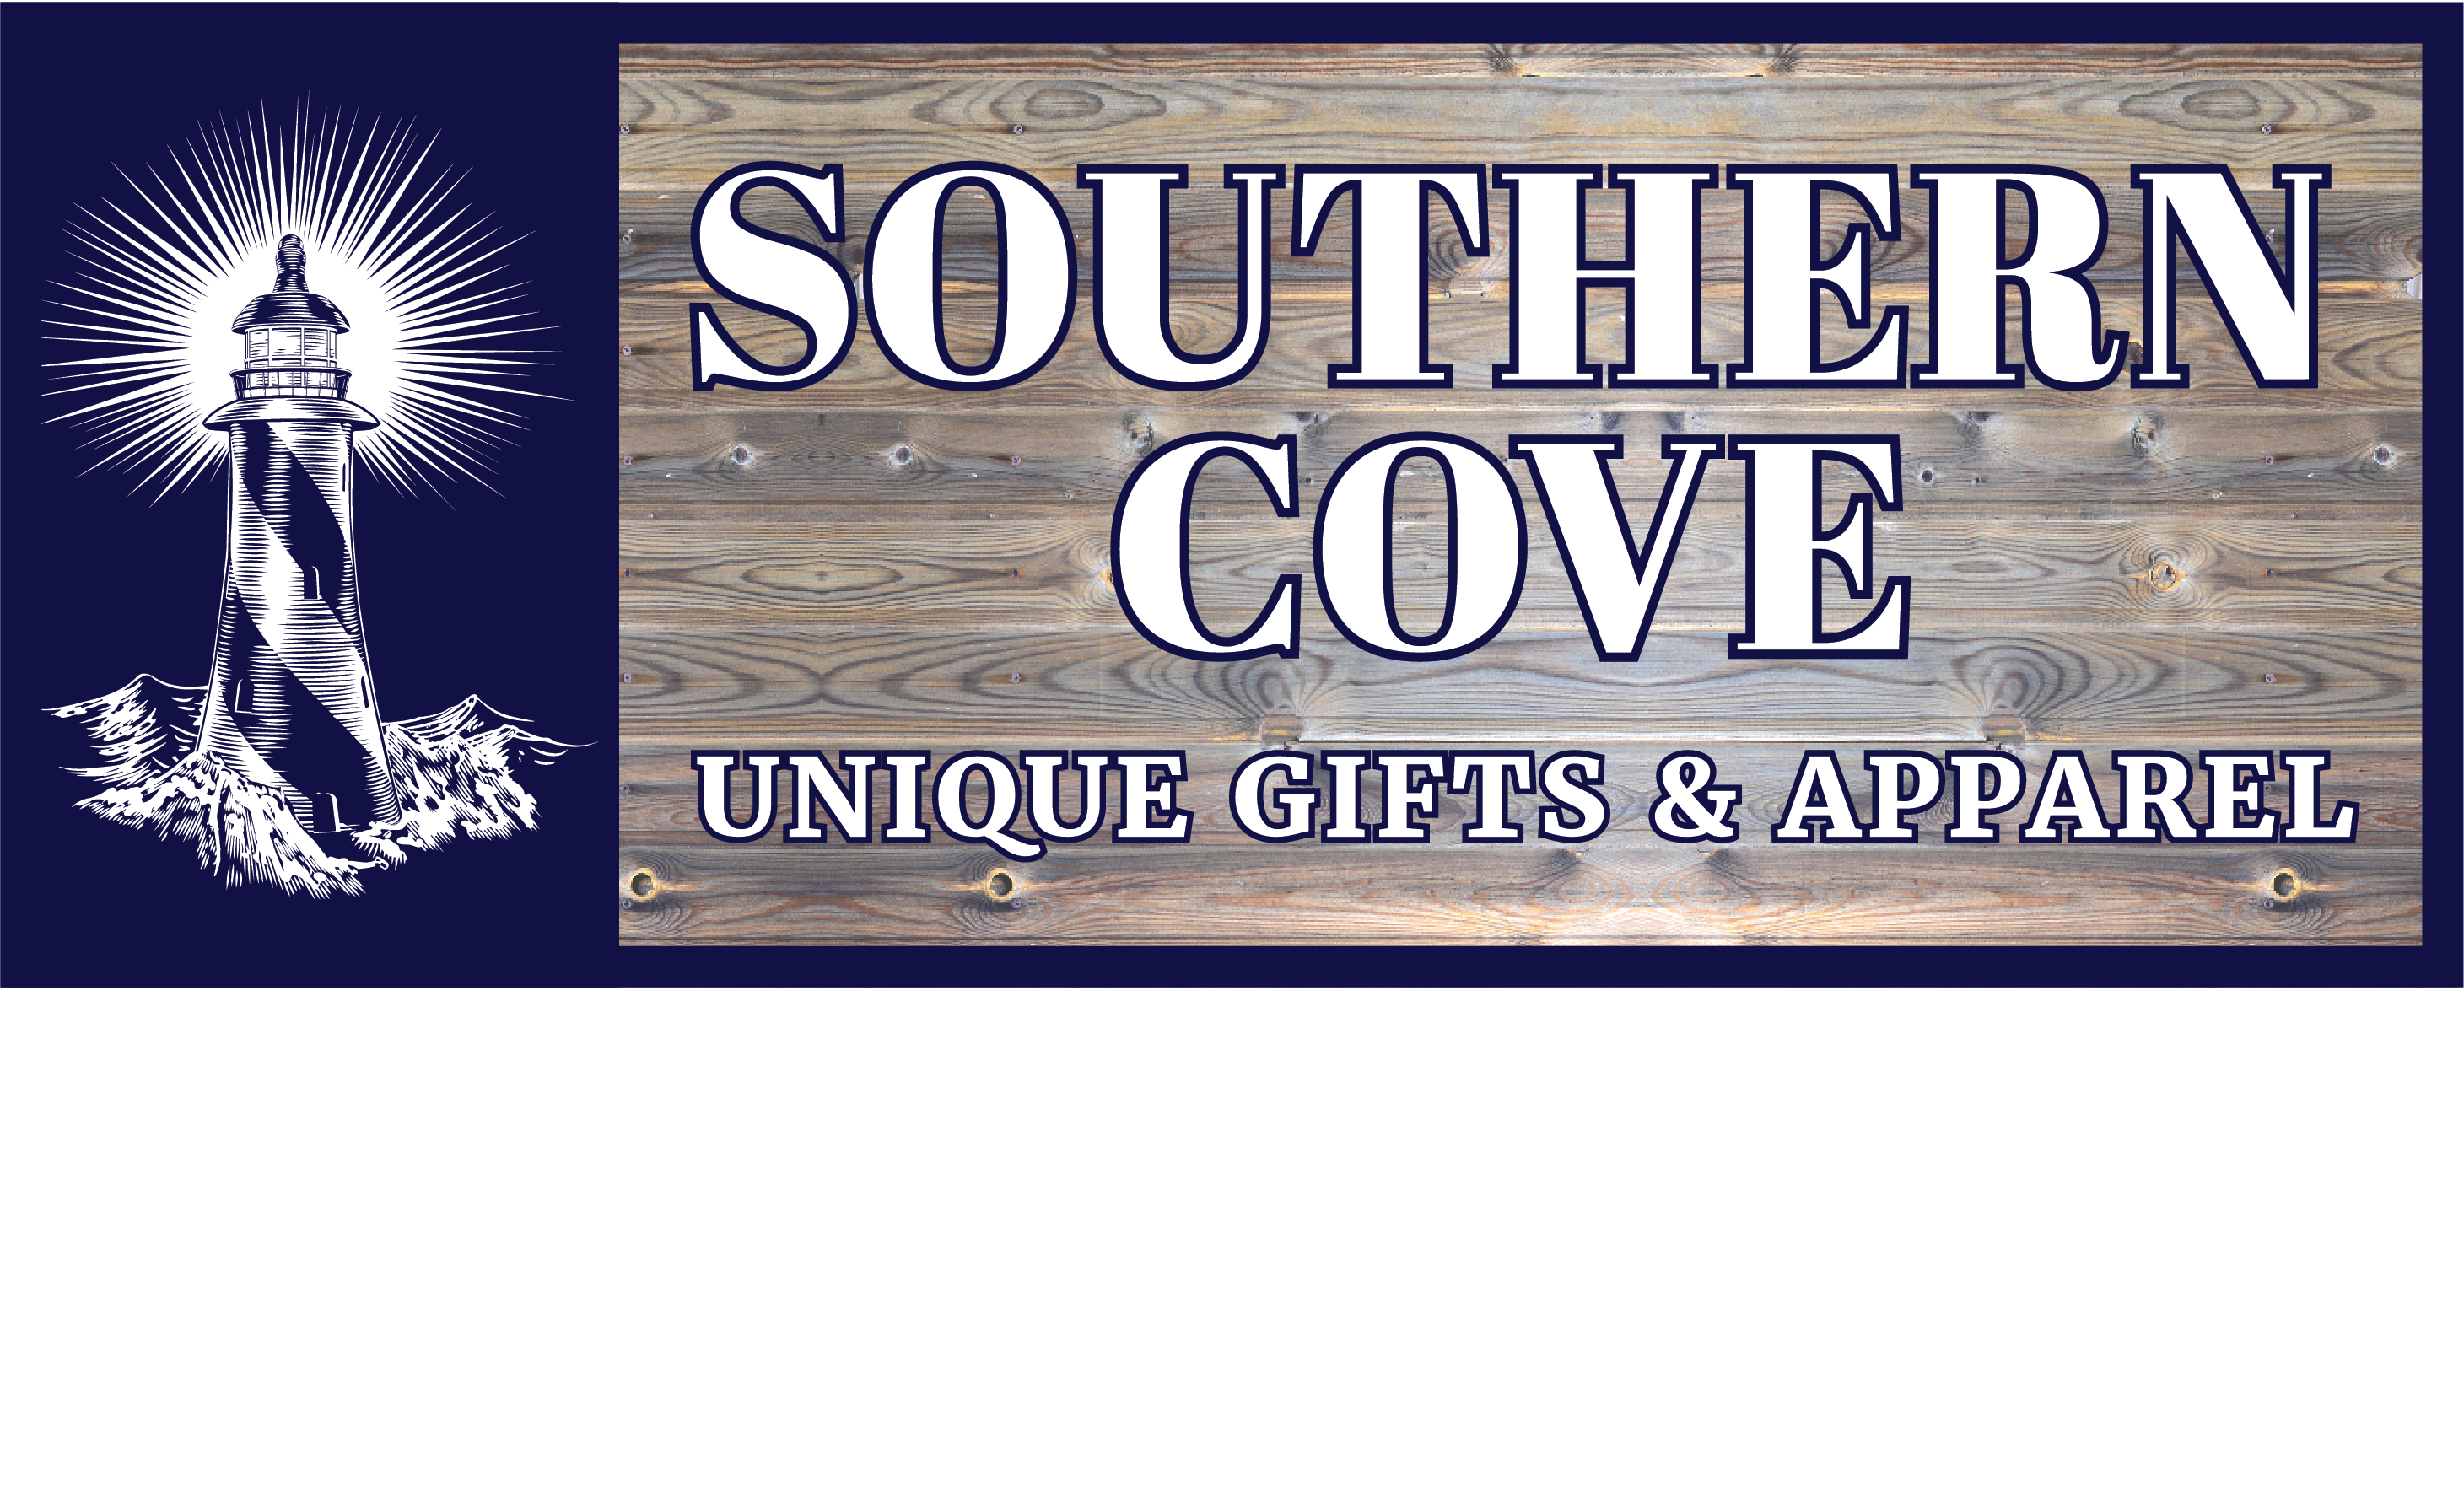 Southern Cove